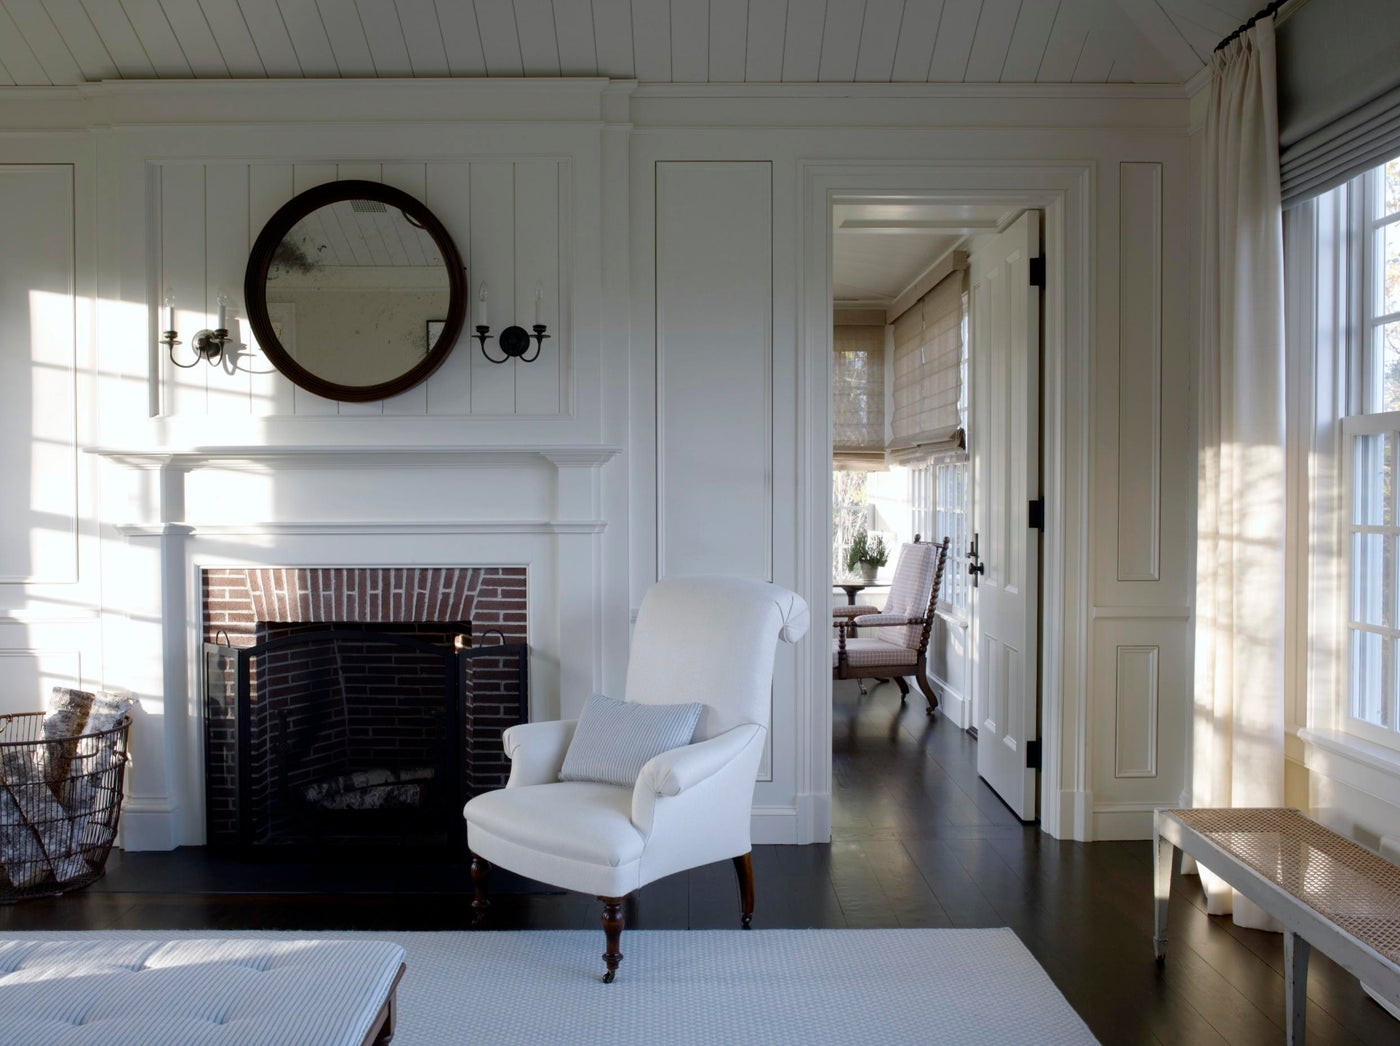 A Master Bedroom fireplace detail with sunroom beyond